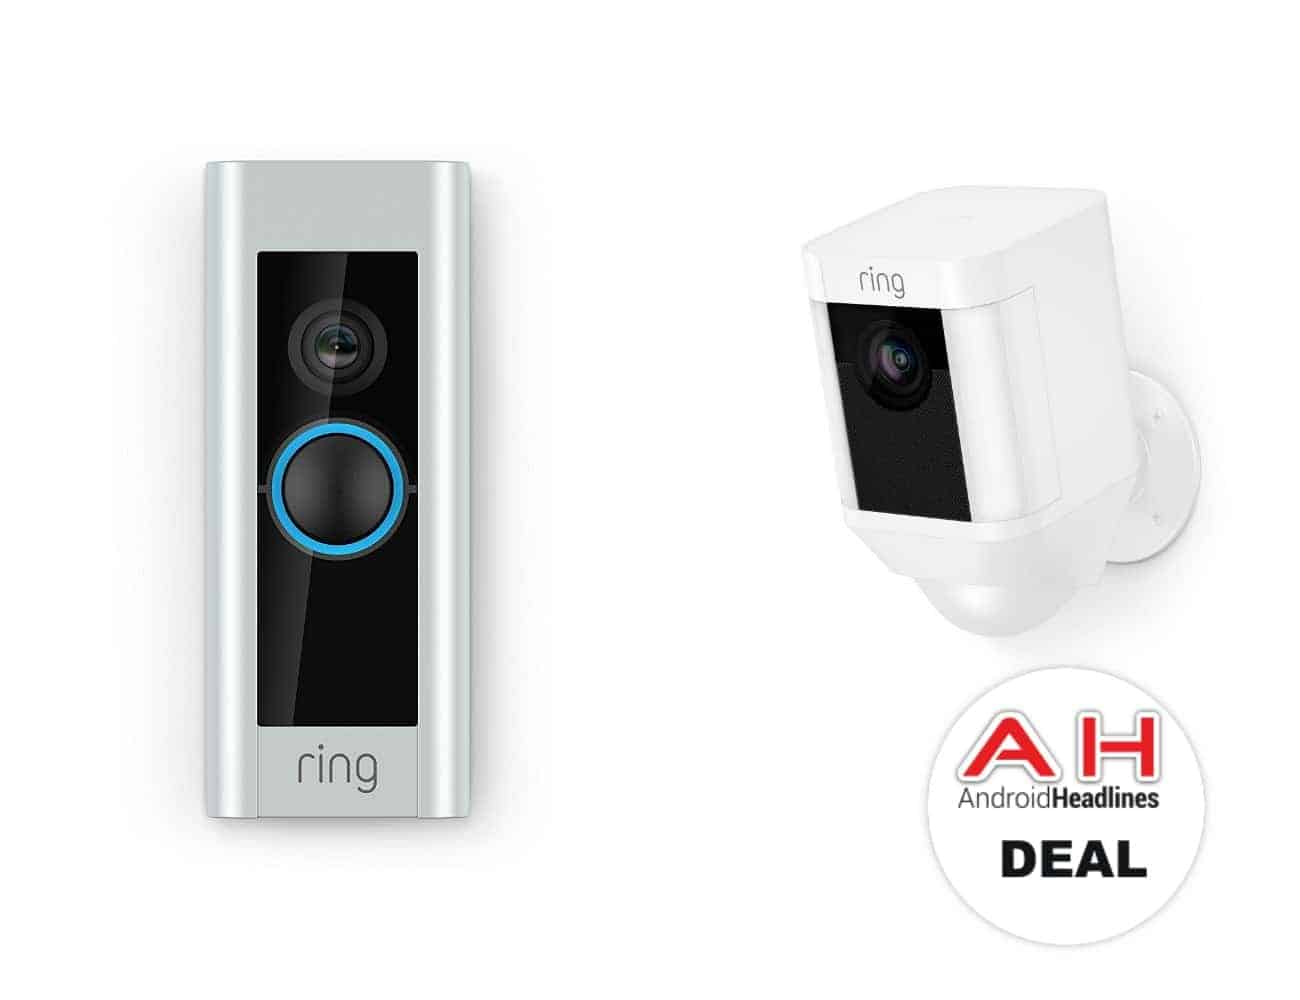 deal ring video doorbell pro for 199 spotlight cam for. Black Bedroom Furniture Sets. Home Design Ideas